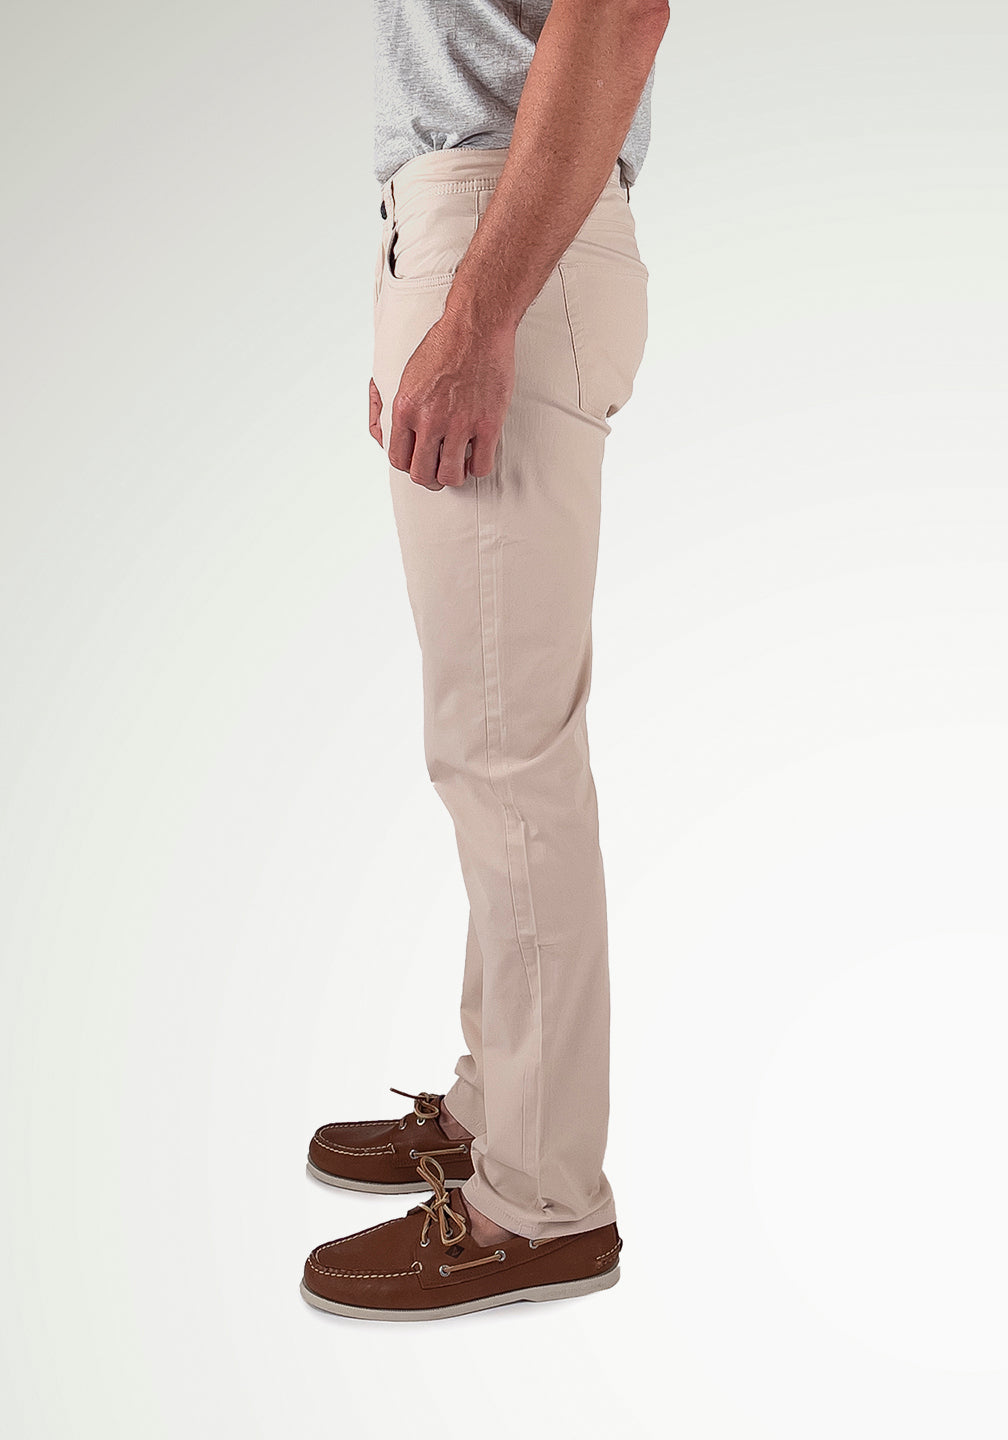 Back View Performance 5-Pocket Pants- Westport Athletic Straight Fit in Pumice